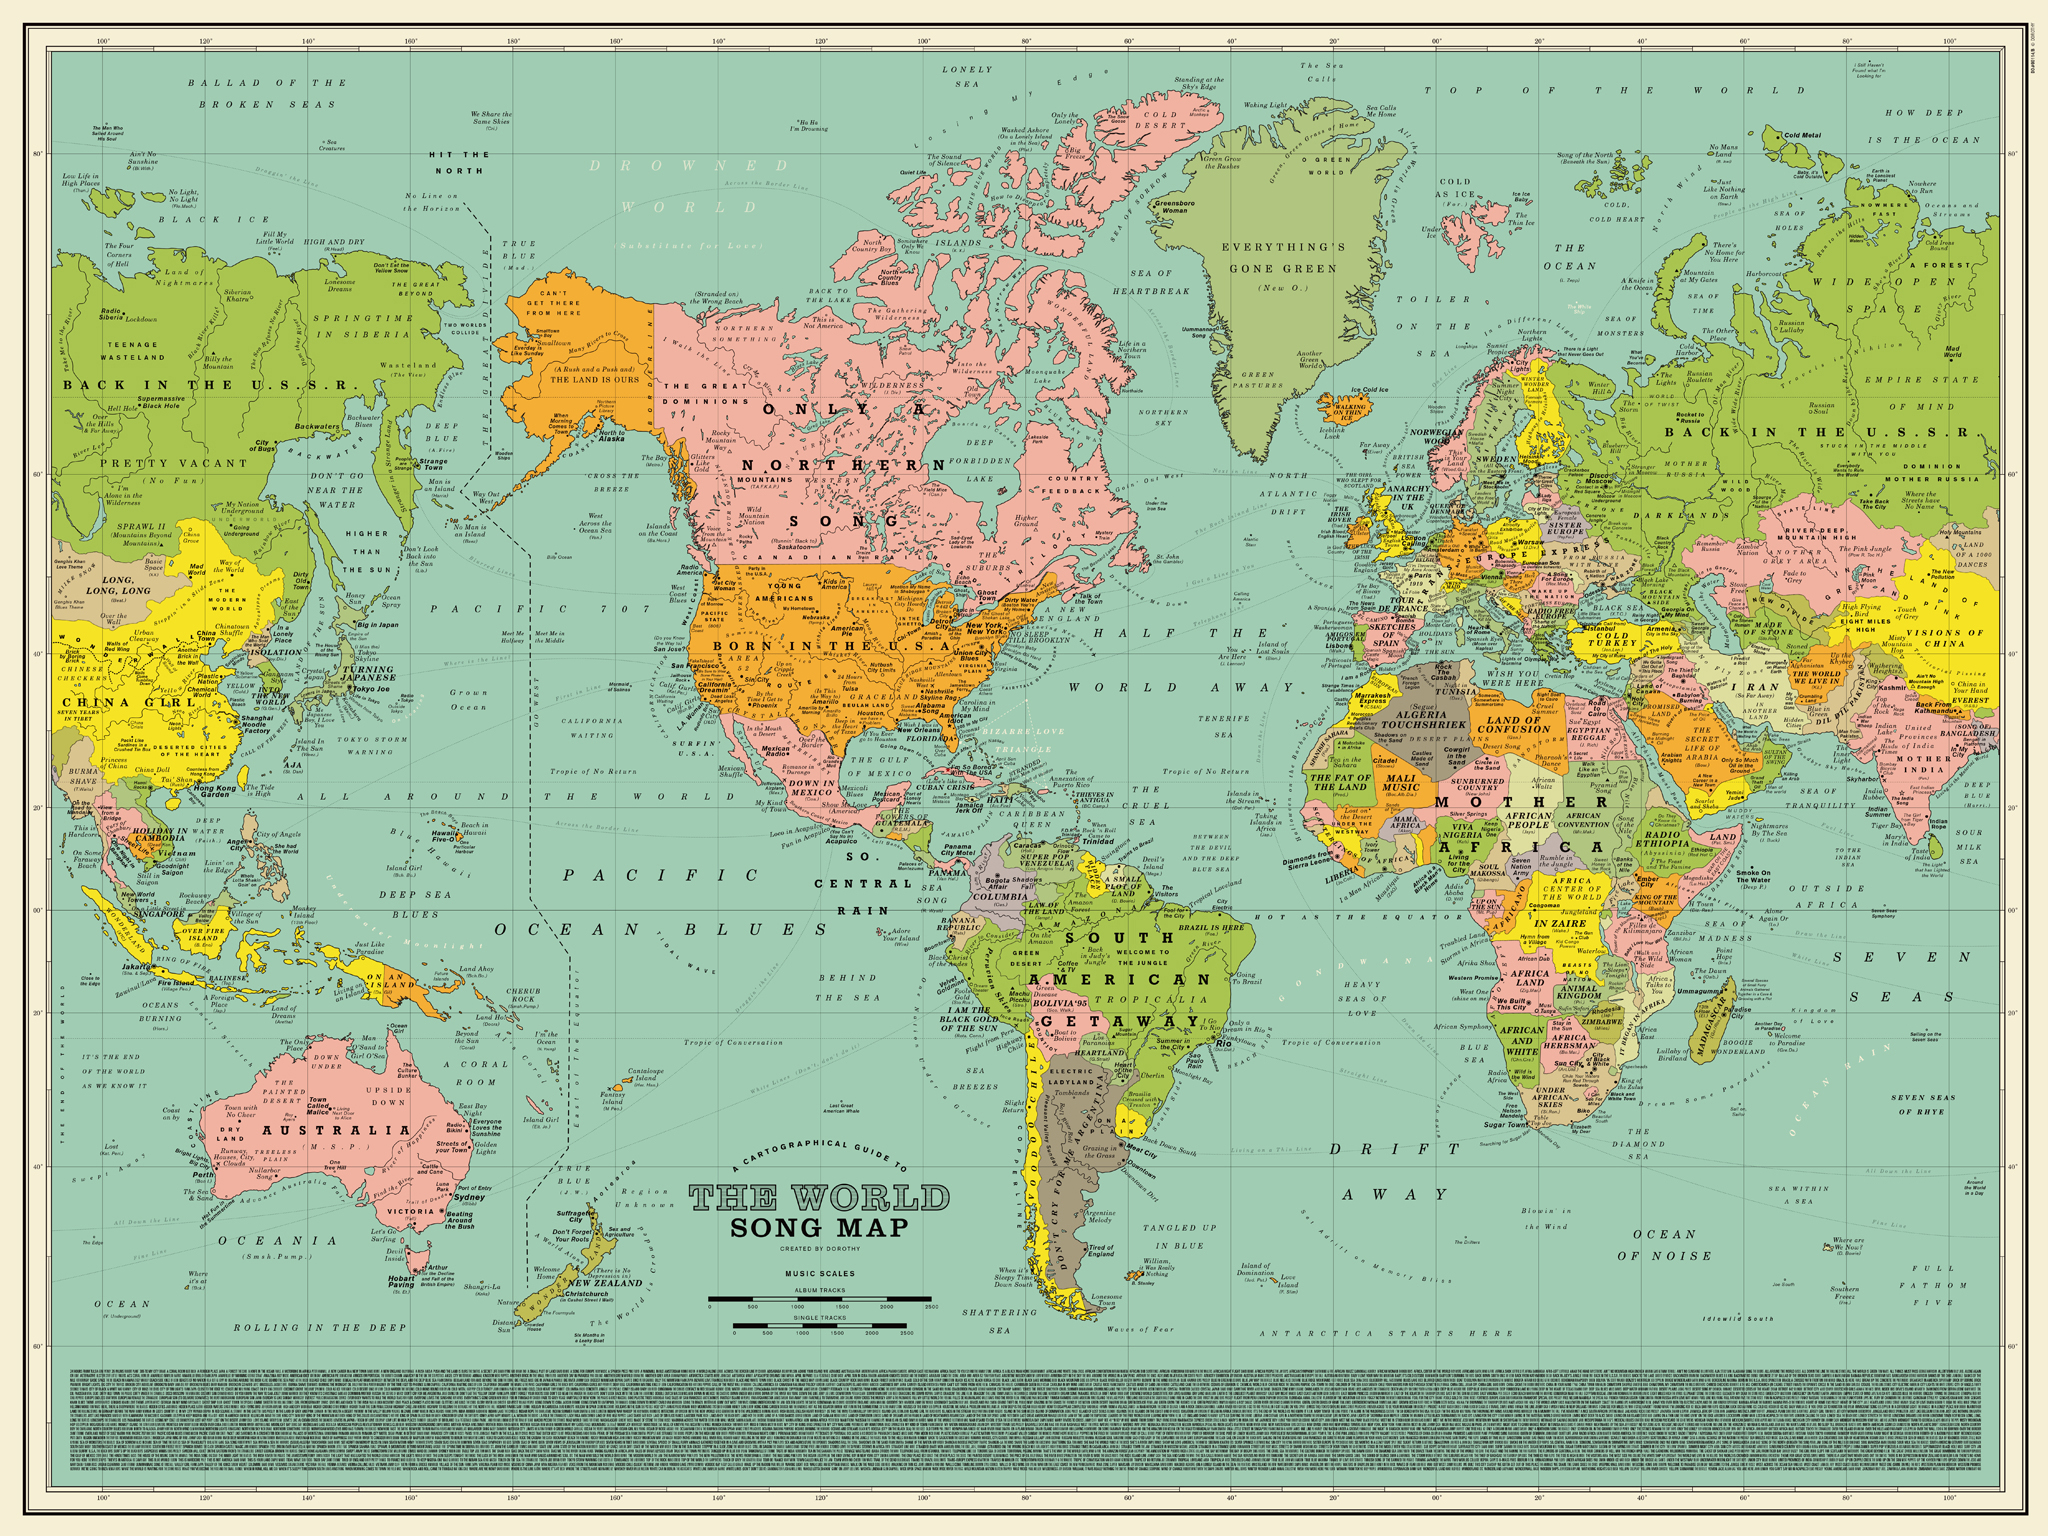 World Song Map A Detailed Poster That Imagines The World Map Made - Woldmap